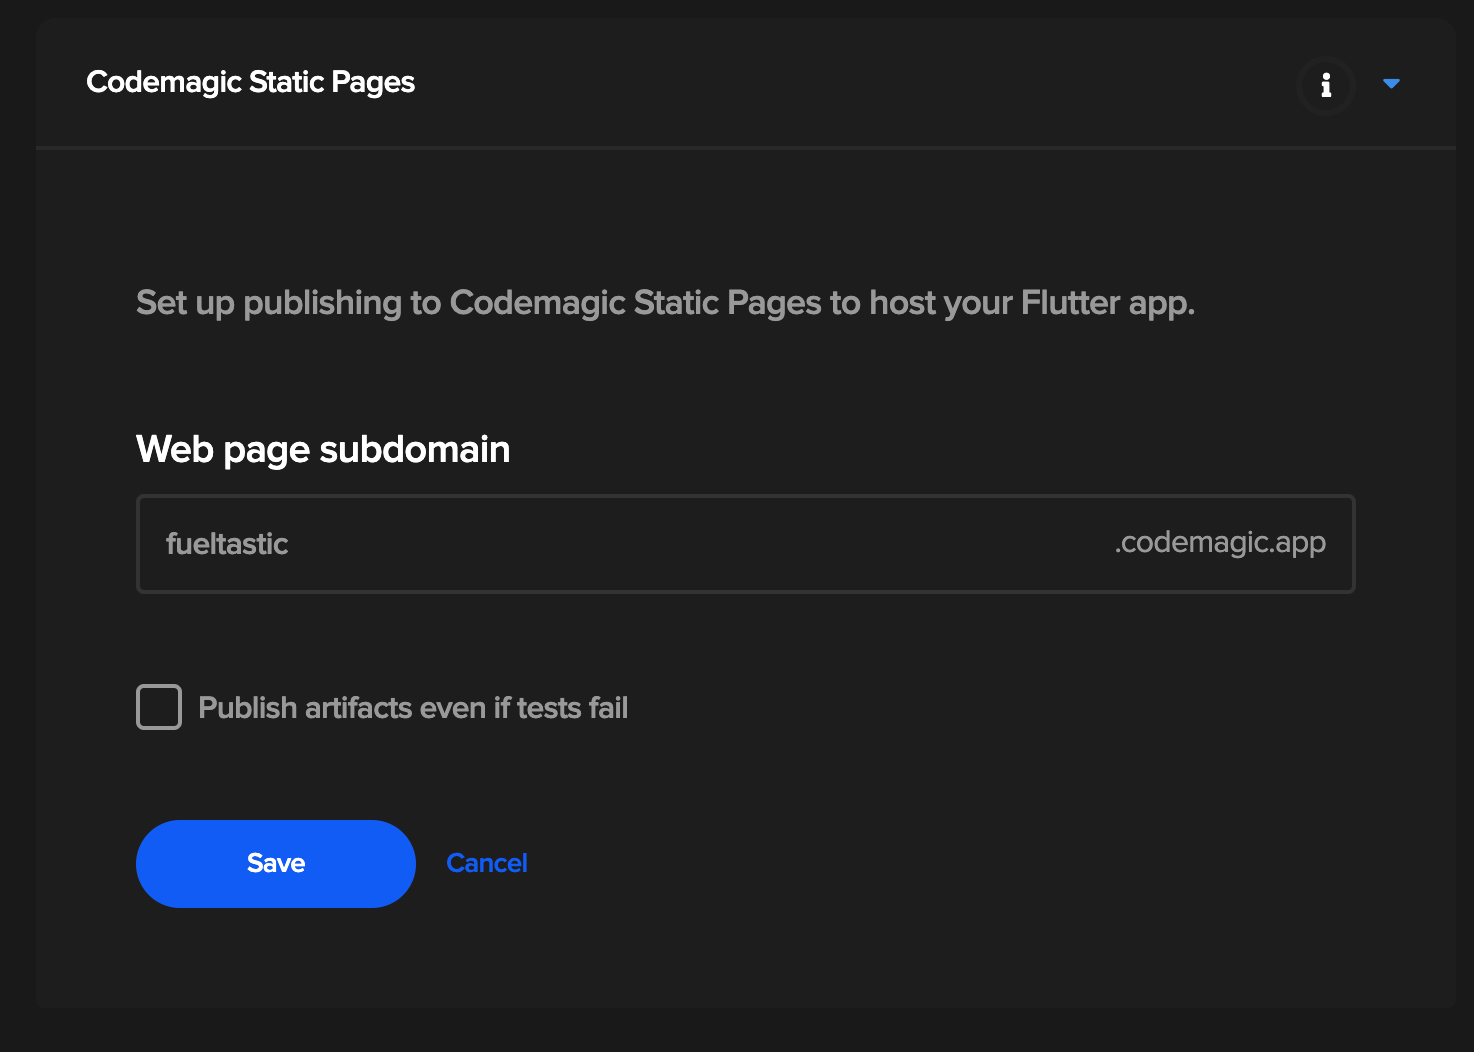 Publishing to Codemagic Static Pages